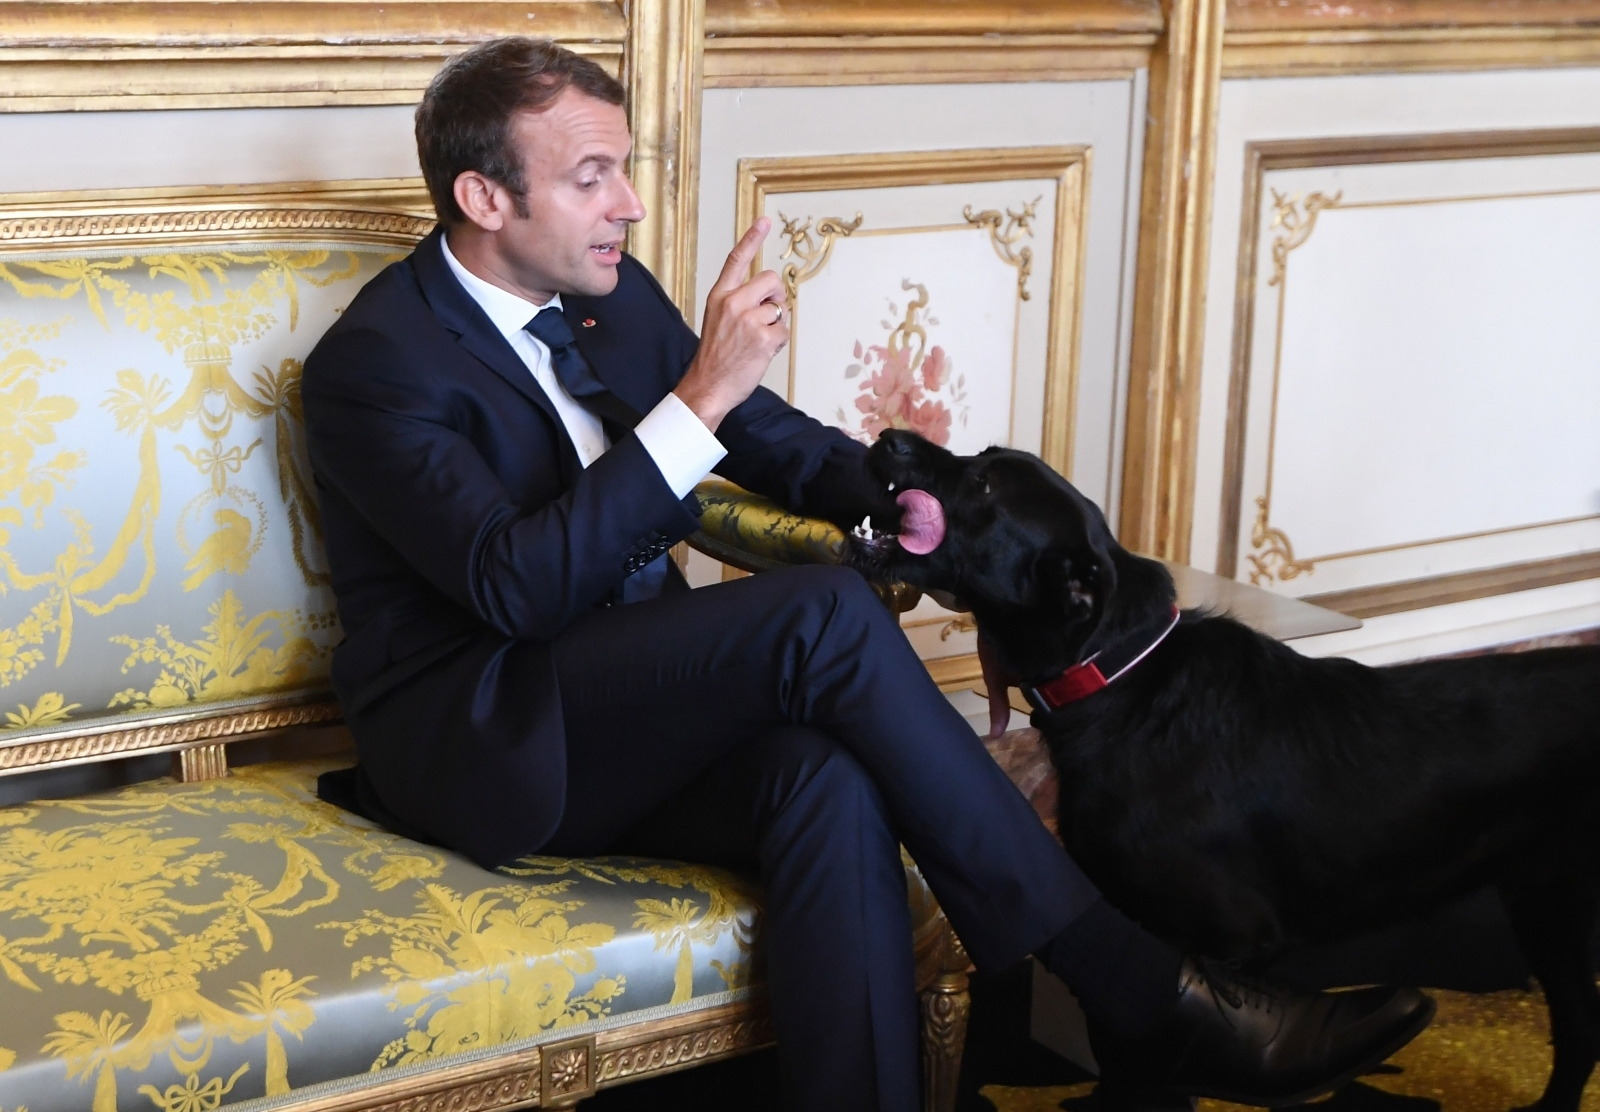 French president's dog caught peeing in the palace